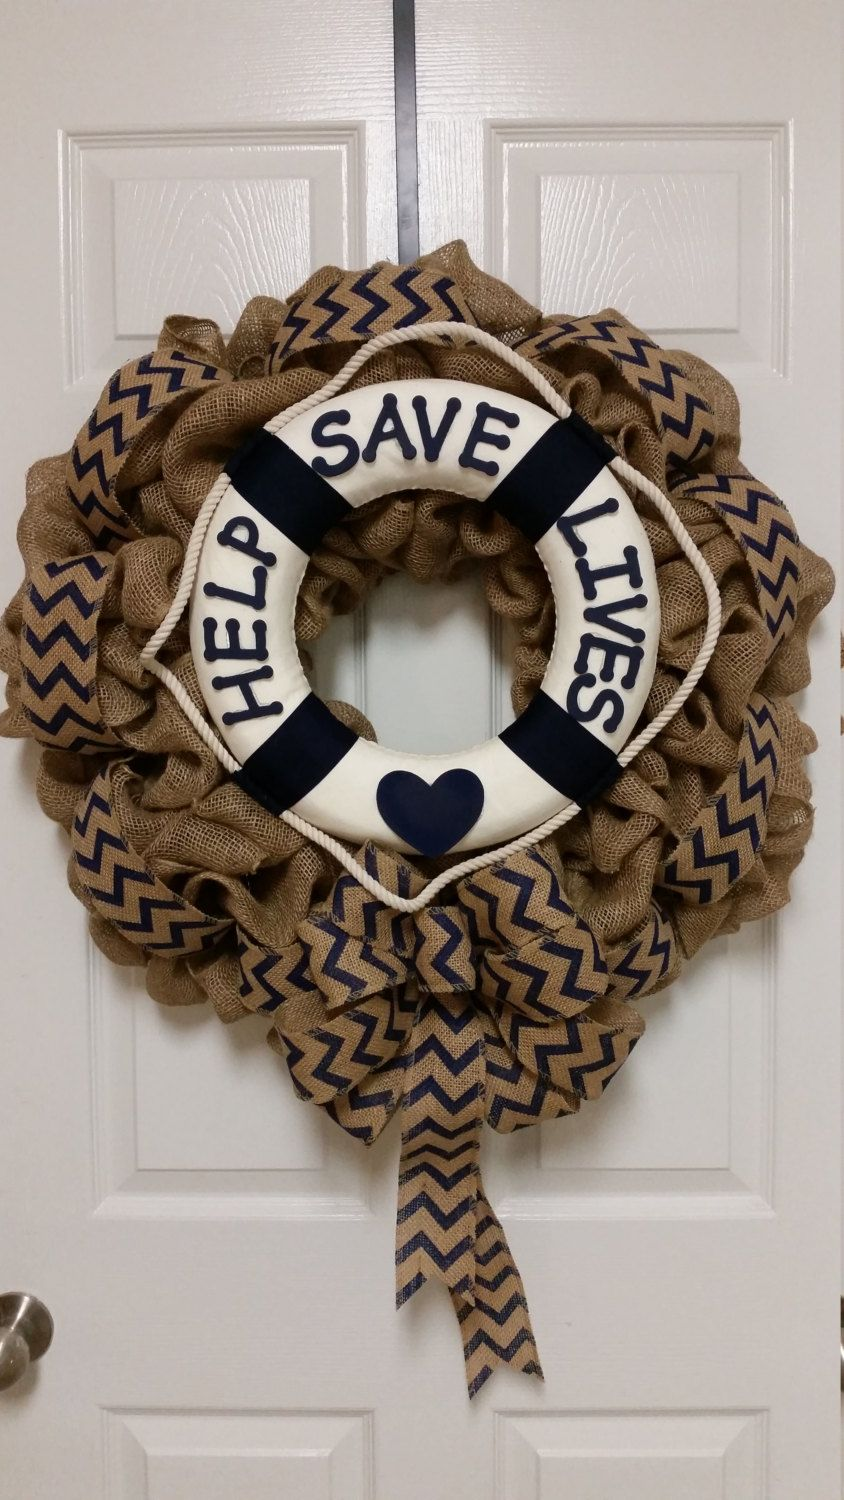 Suicide Awareness Wreath, Suicide Prevention Wreath, Causes and Awareness Wreath, Suicide Benefit Wreath, Help Save Lives Burlap Wreath by TriciasTreasures11 on Etsy